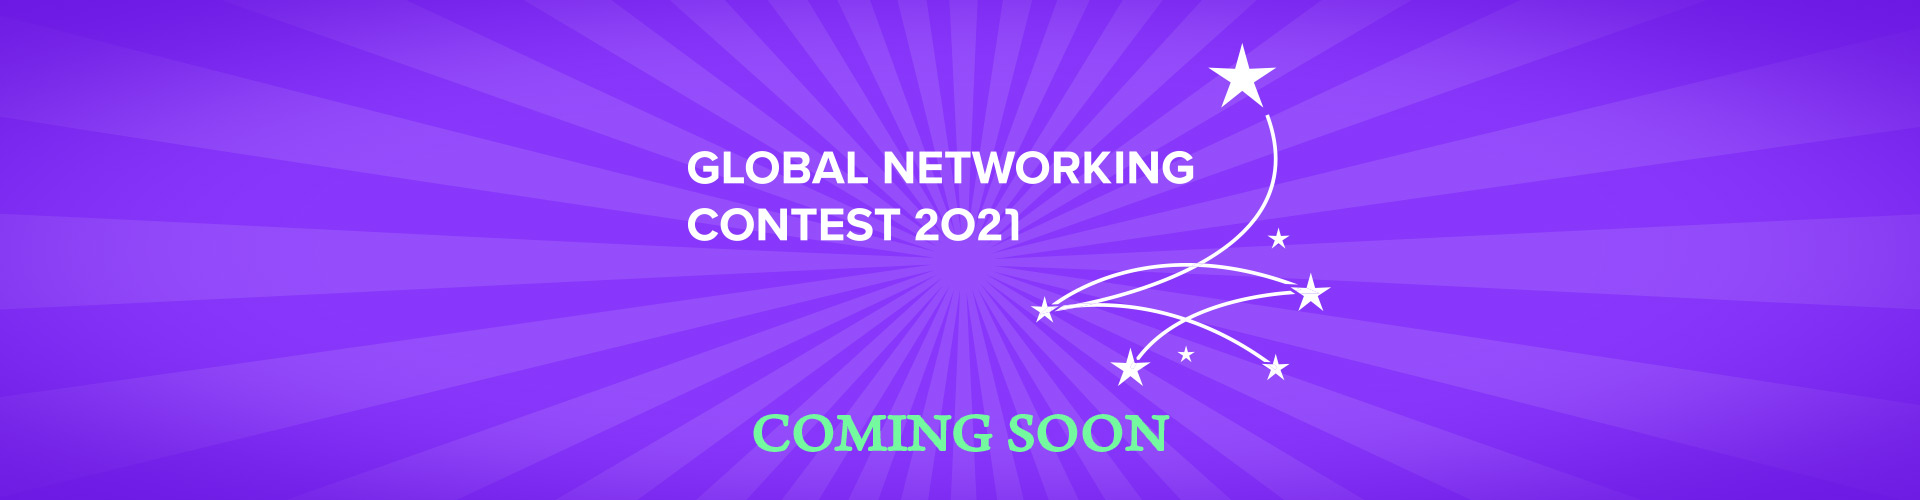 2ND GLOBAL NETWORKING CONTEST